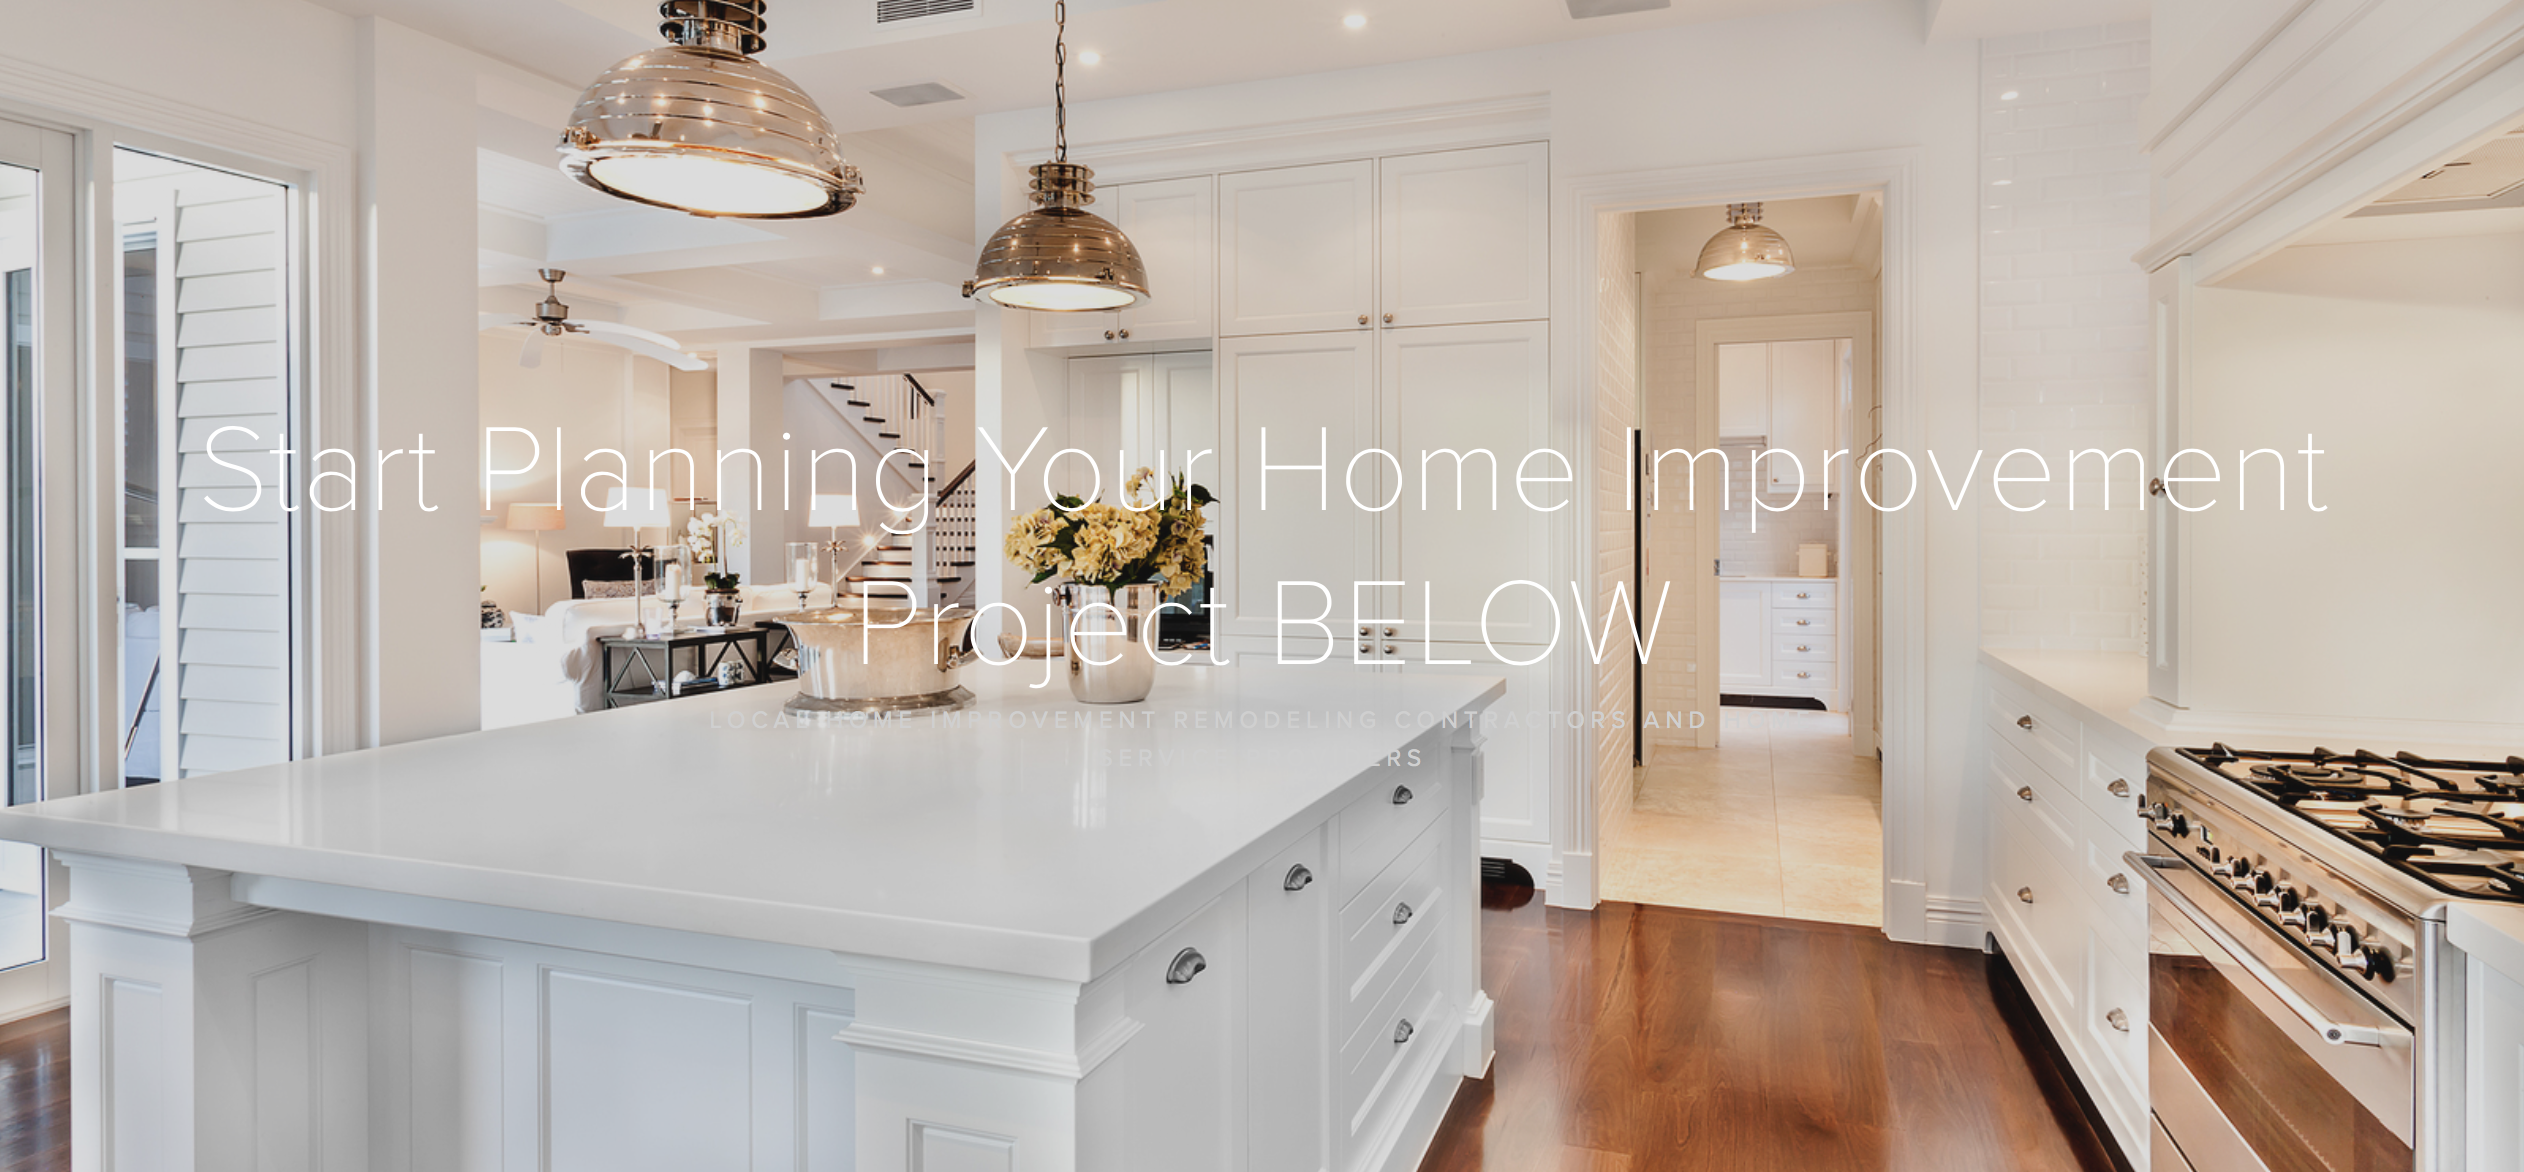 Start Planning Your Home Improvement Projects With Just